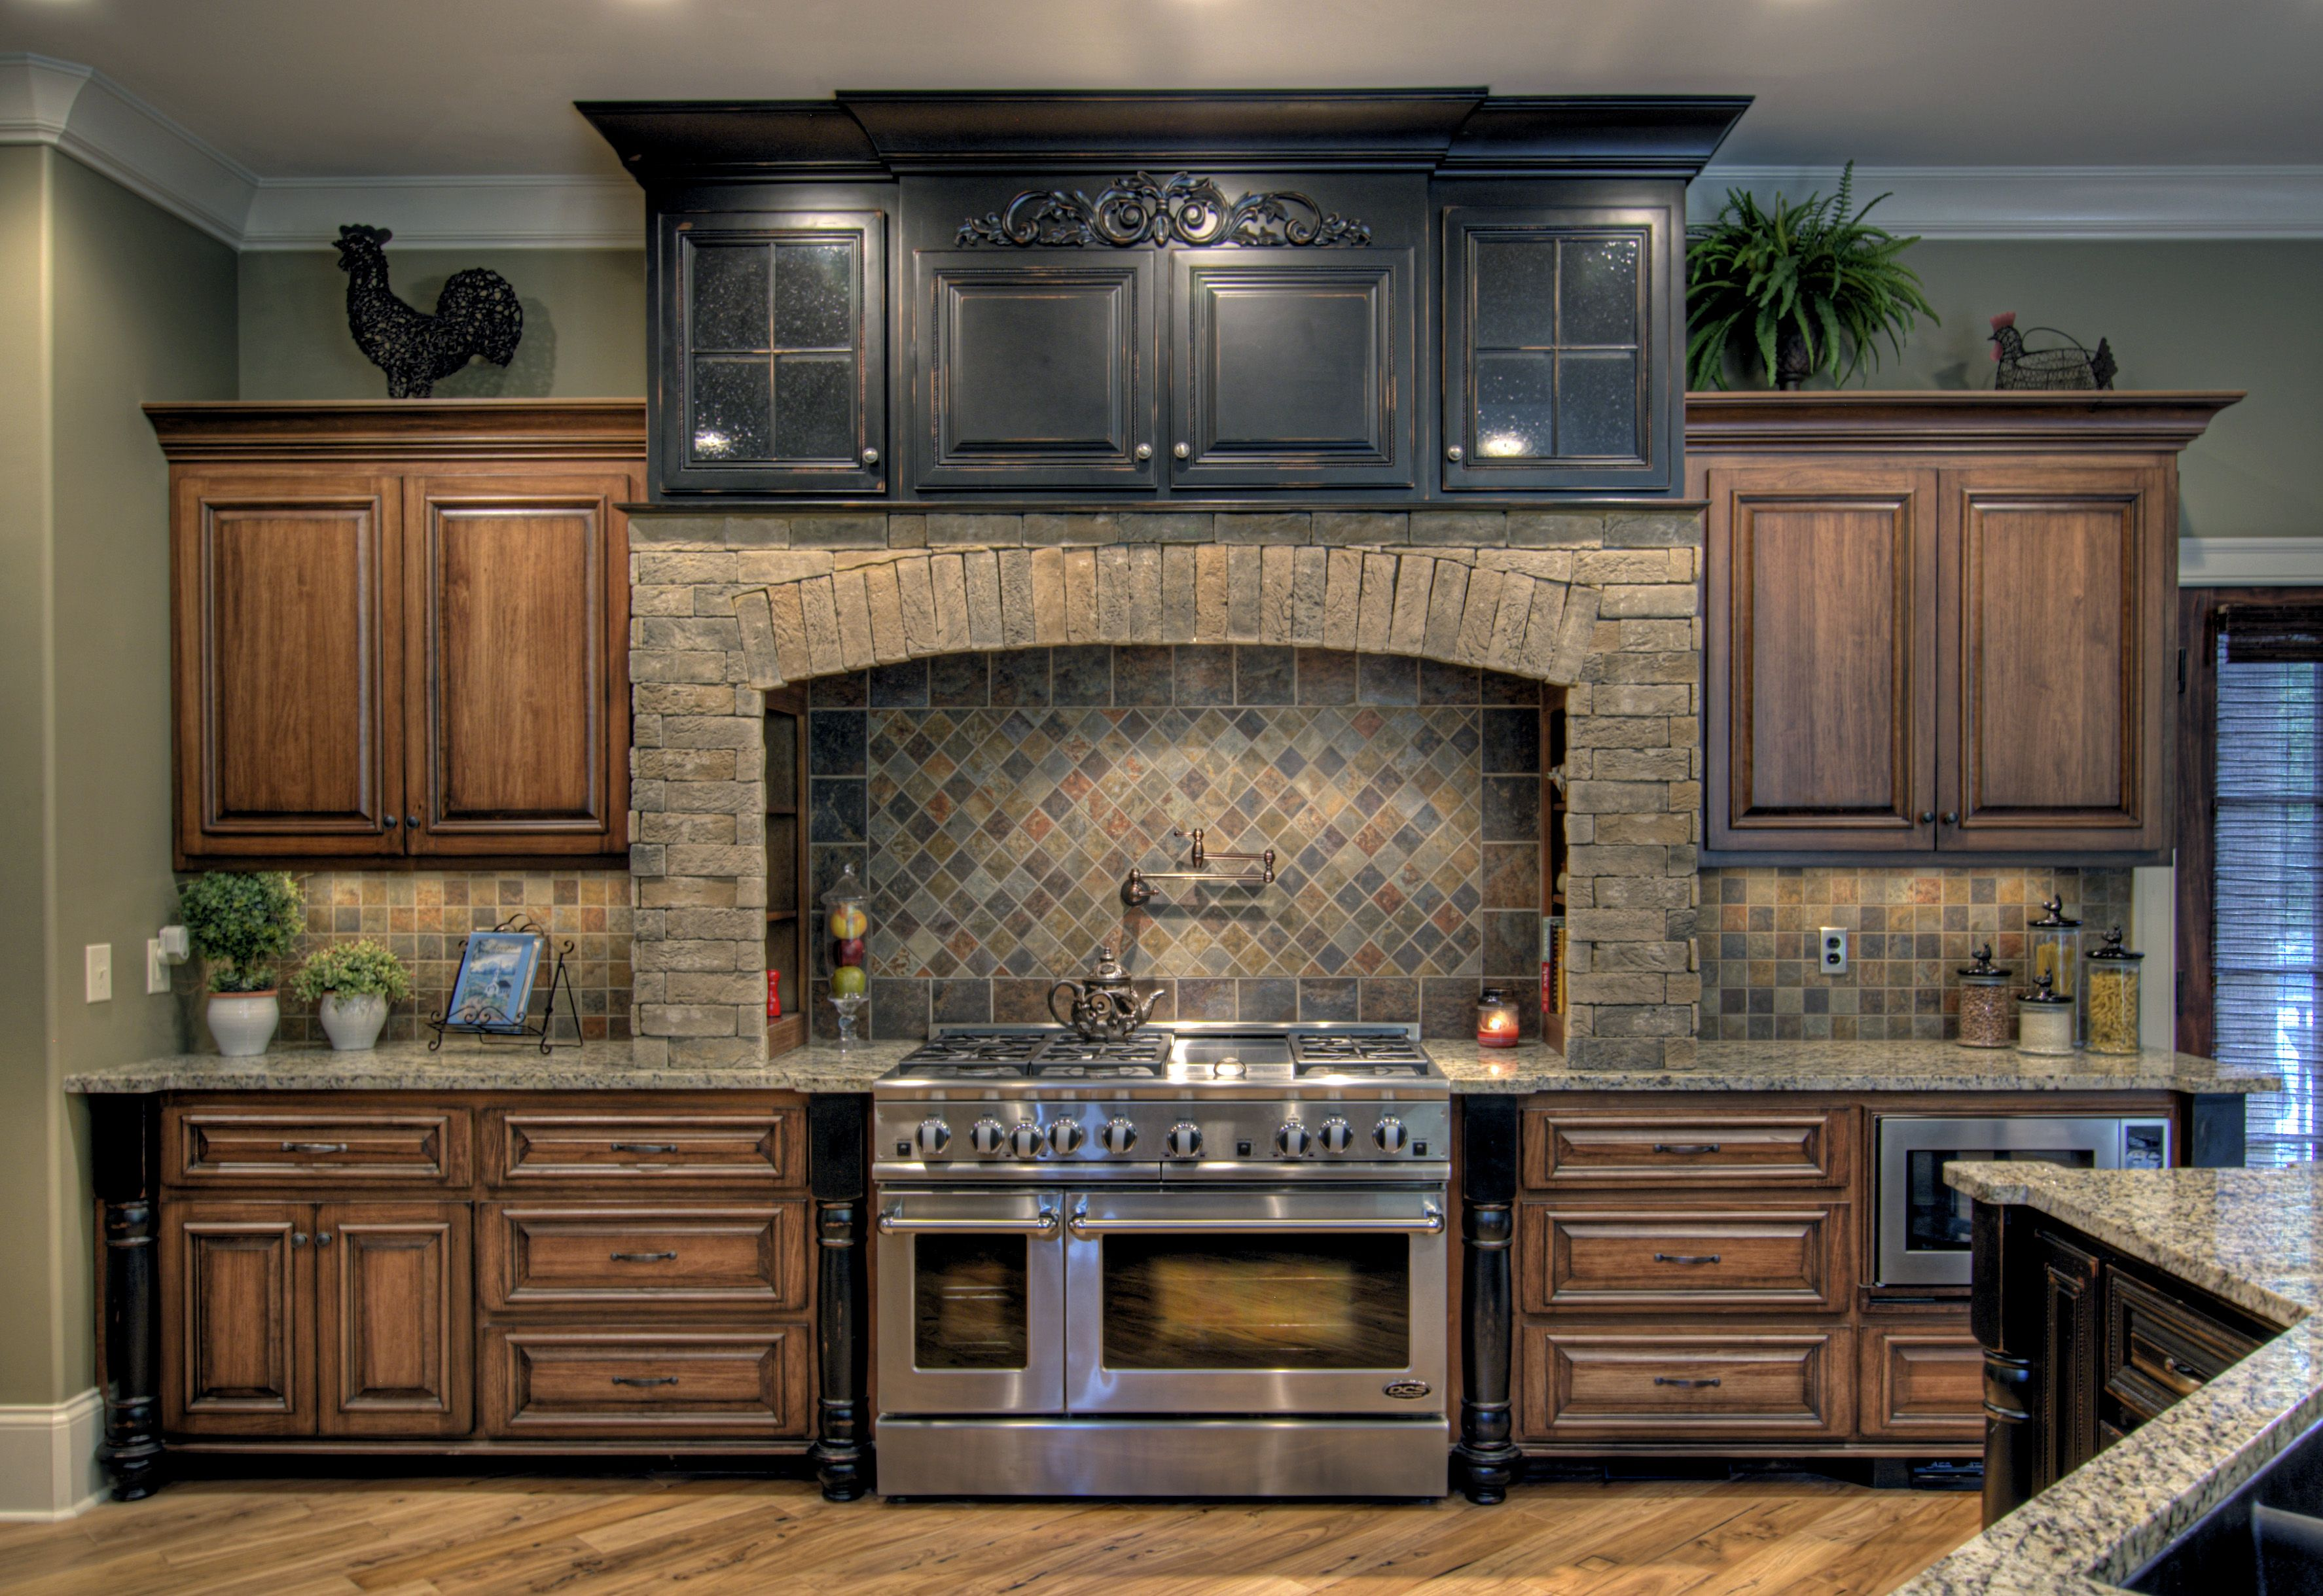 Poplar with umber stain and van dyke 3 549 for Best wood stain for kitchen cabinets